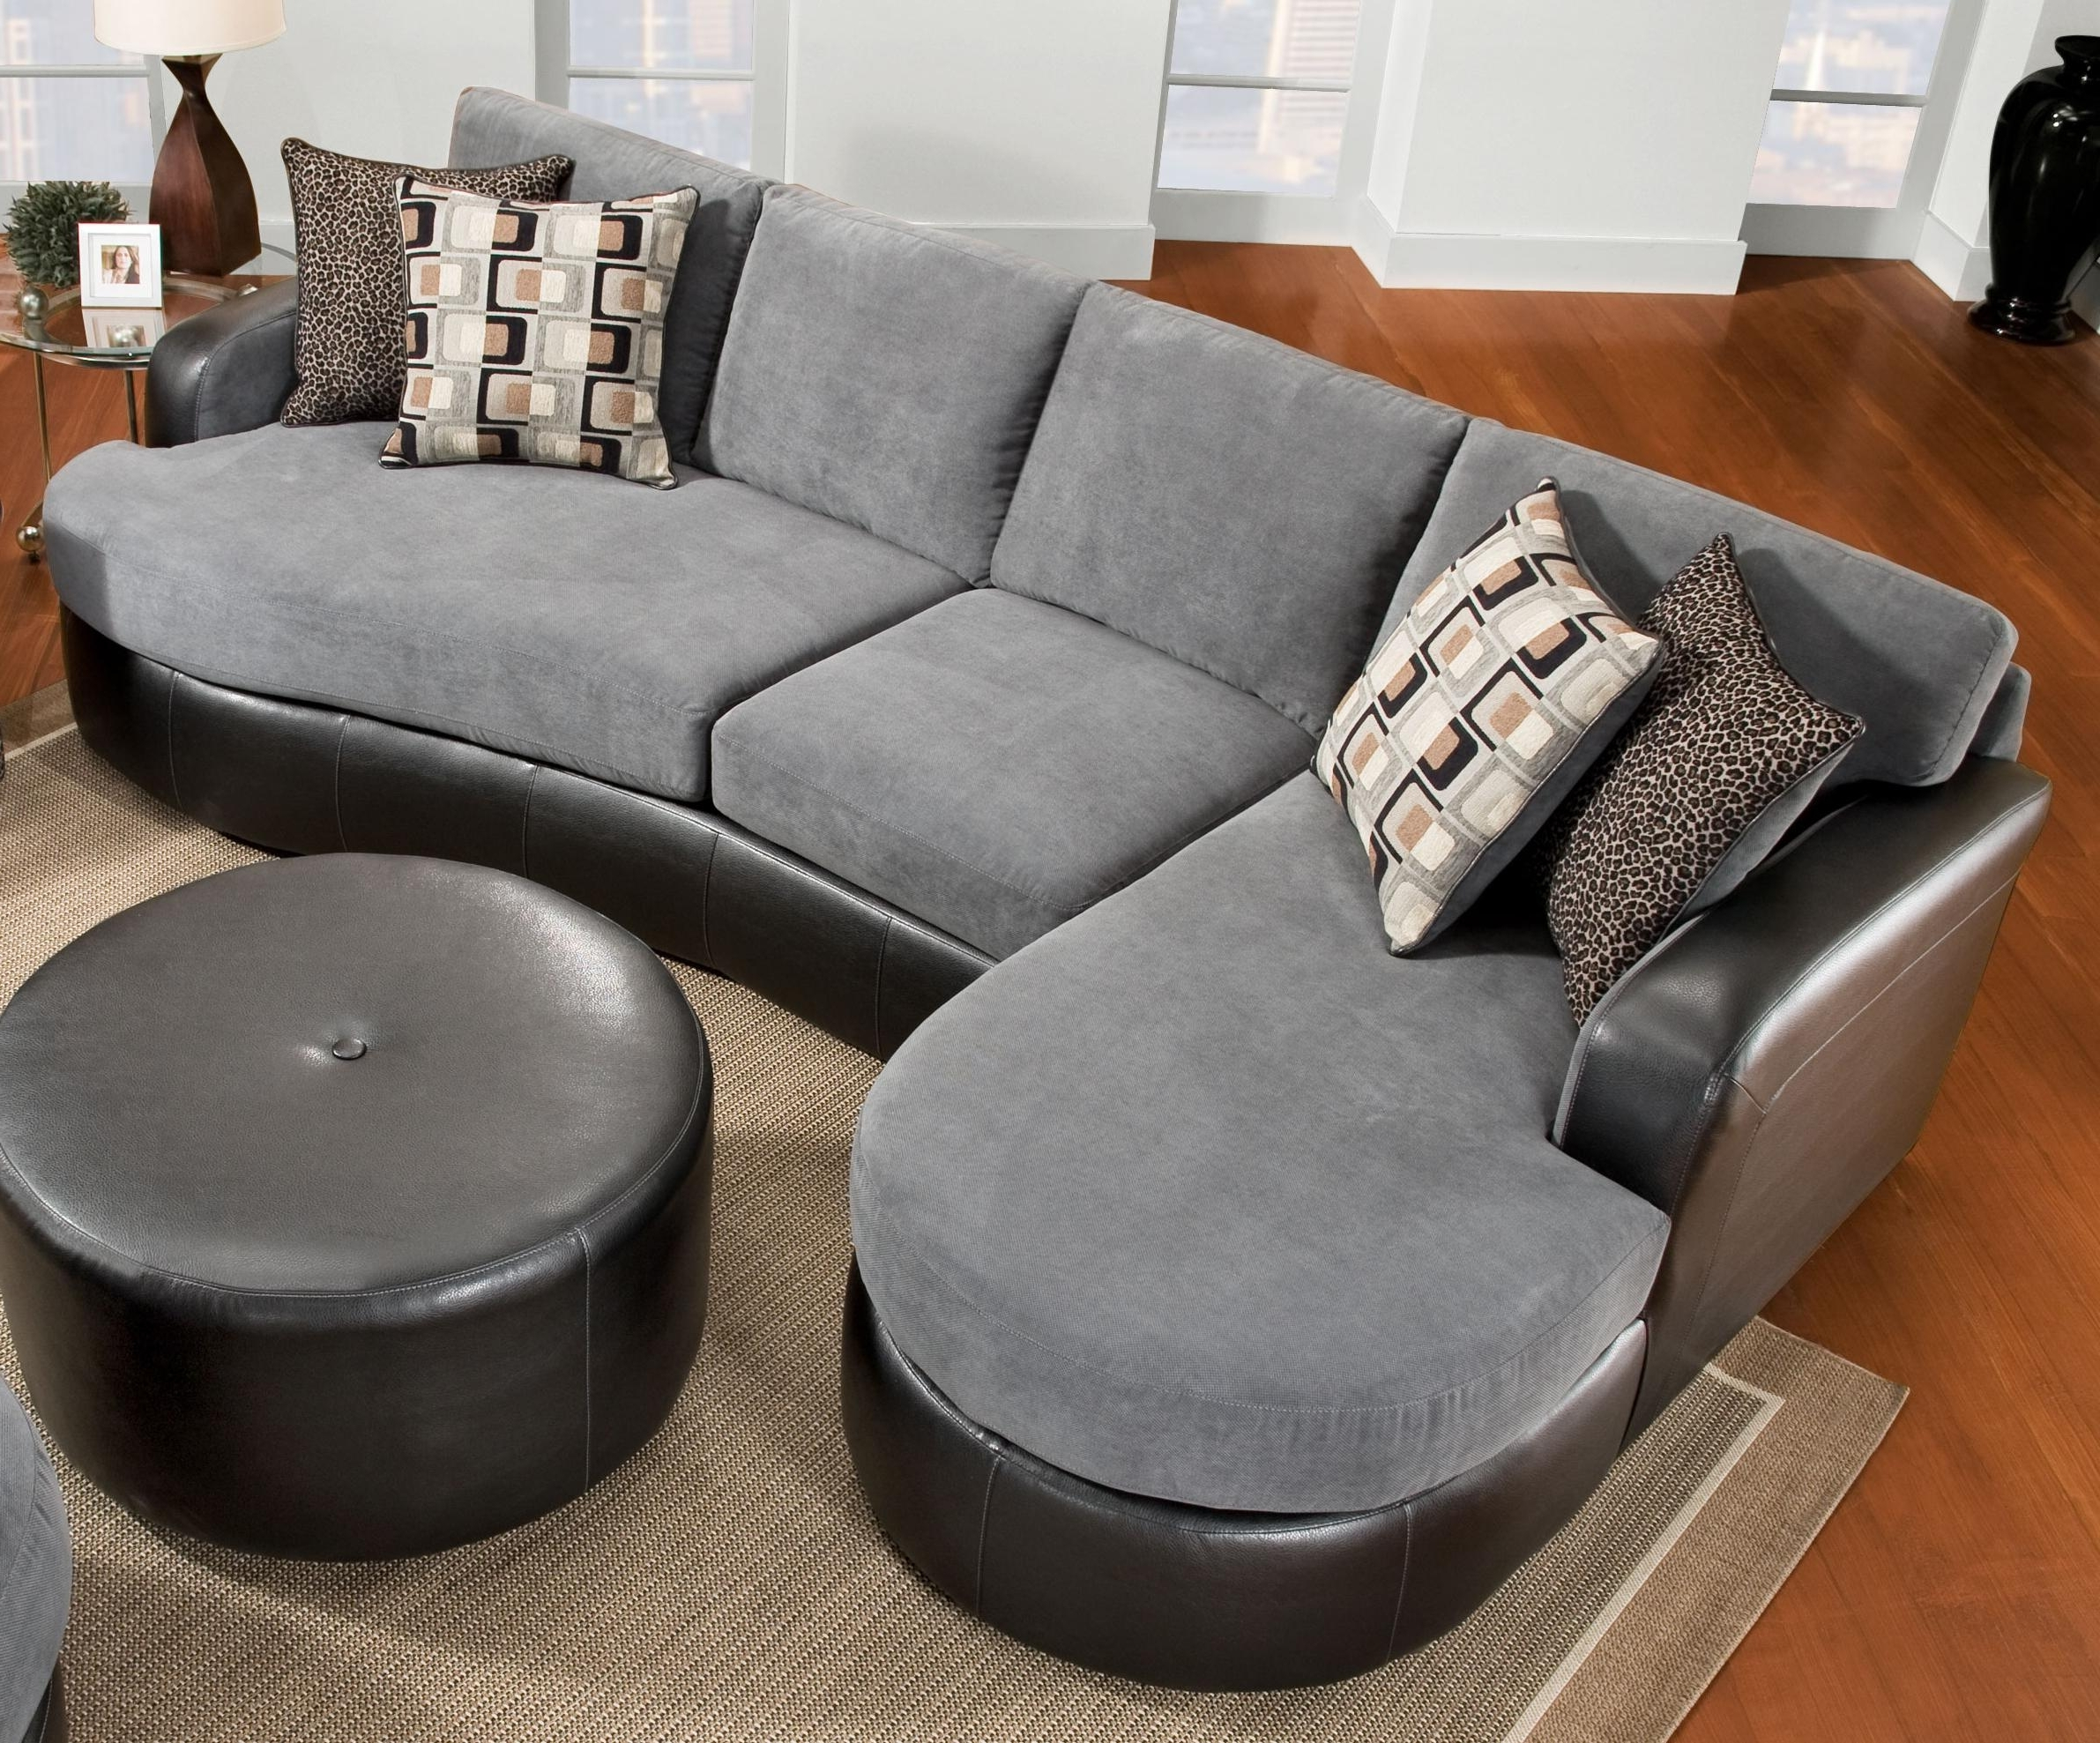 Elegant Chic Gray Velvet And Black Leather Sectional Sofa With F With Regard To Favorite Sofas With Chaise And Ottoman (View 15 of 15)